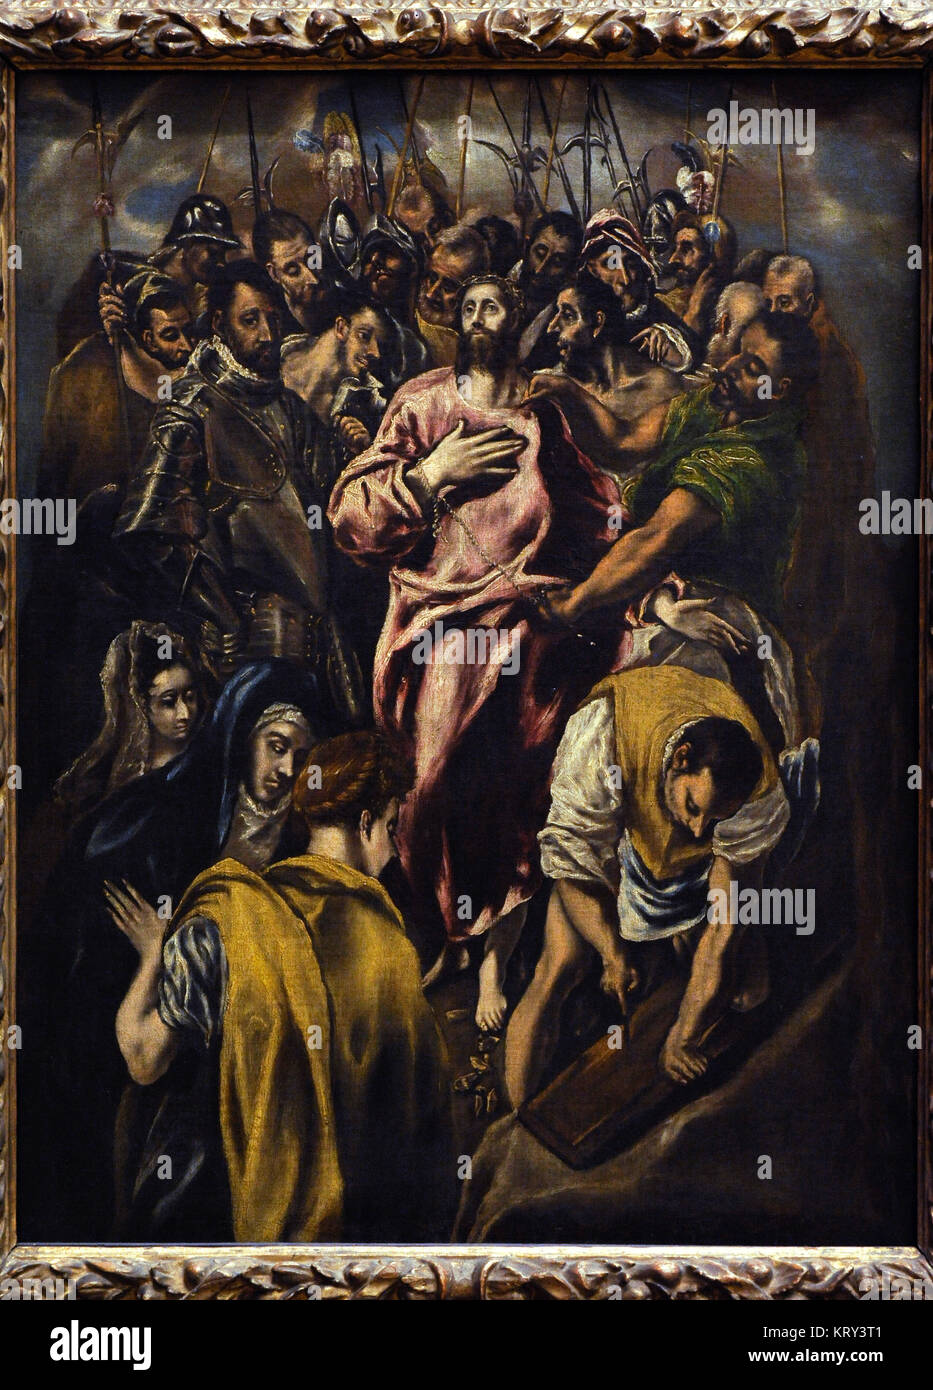 El Greco (1541-1614). Cretan painter. Jesus Christ Stripped of his Garments. National Gallery. Oslo. Norway. - Stock Image